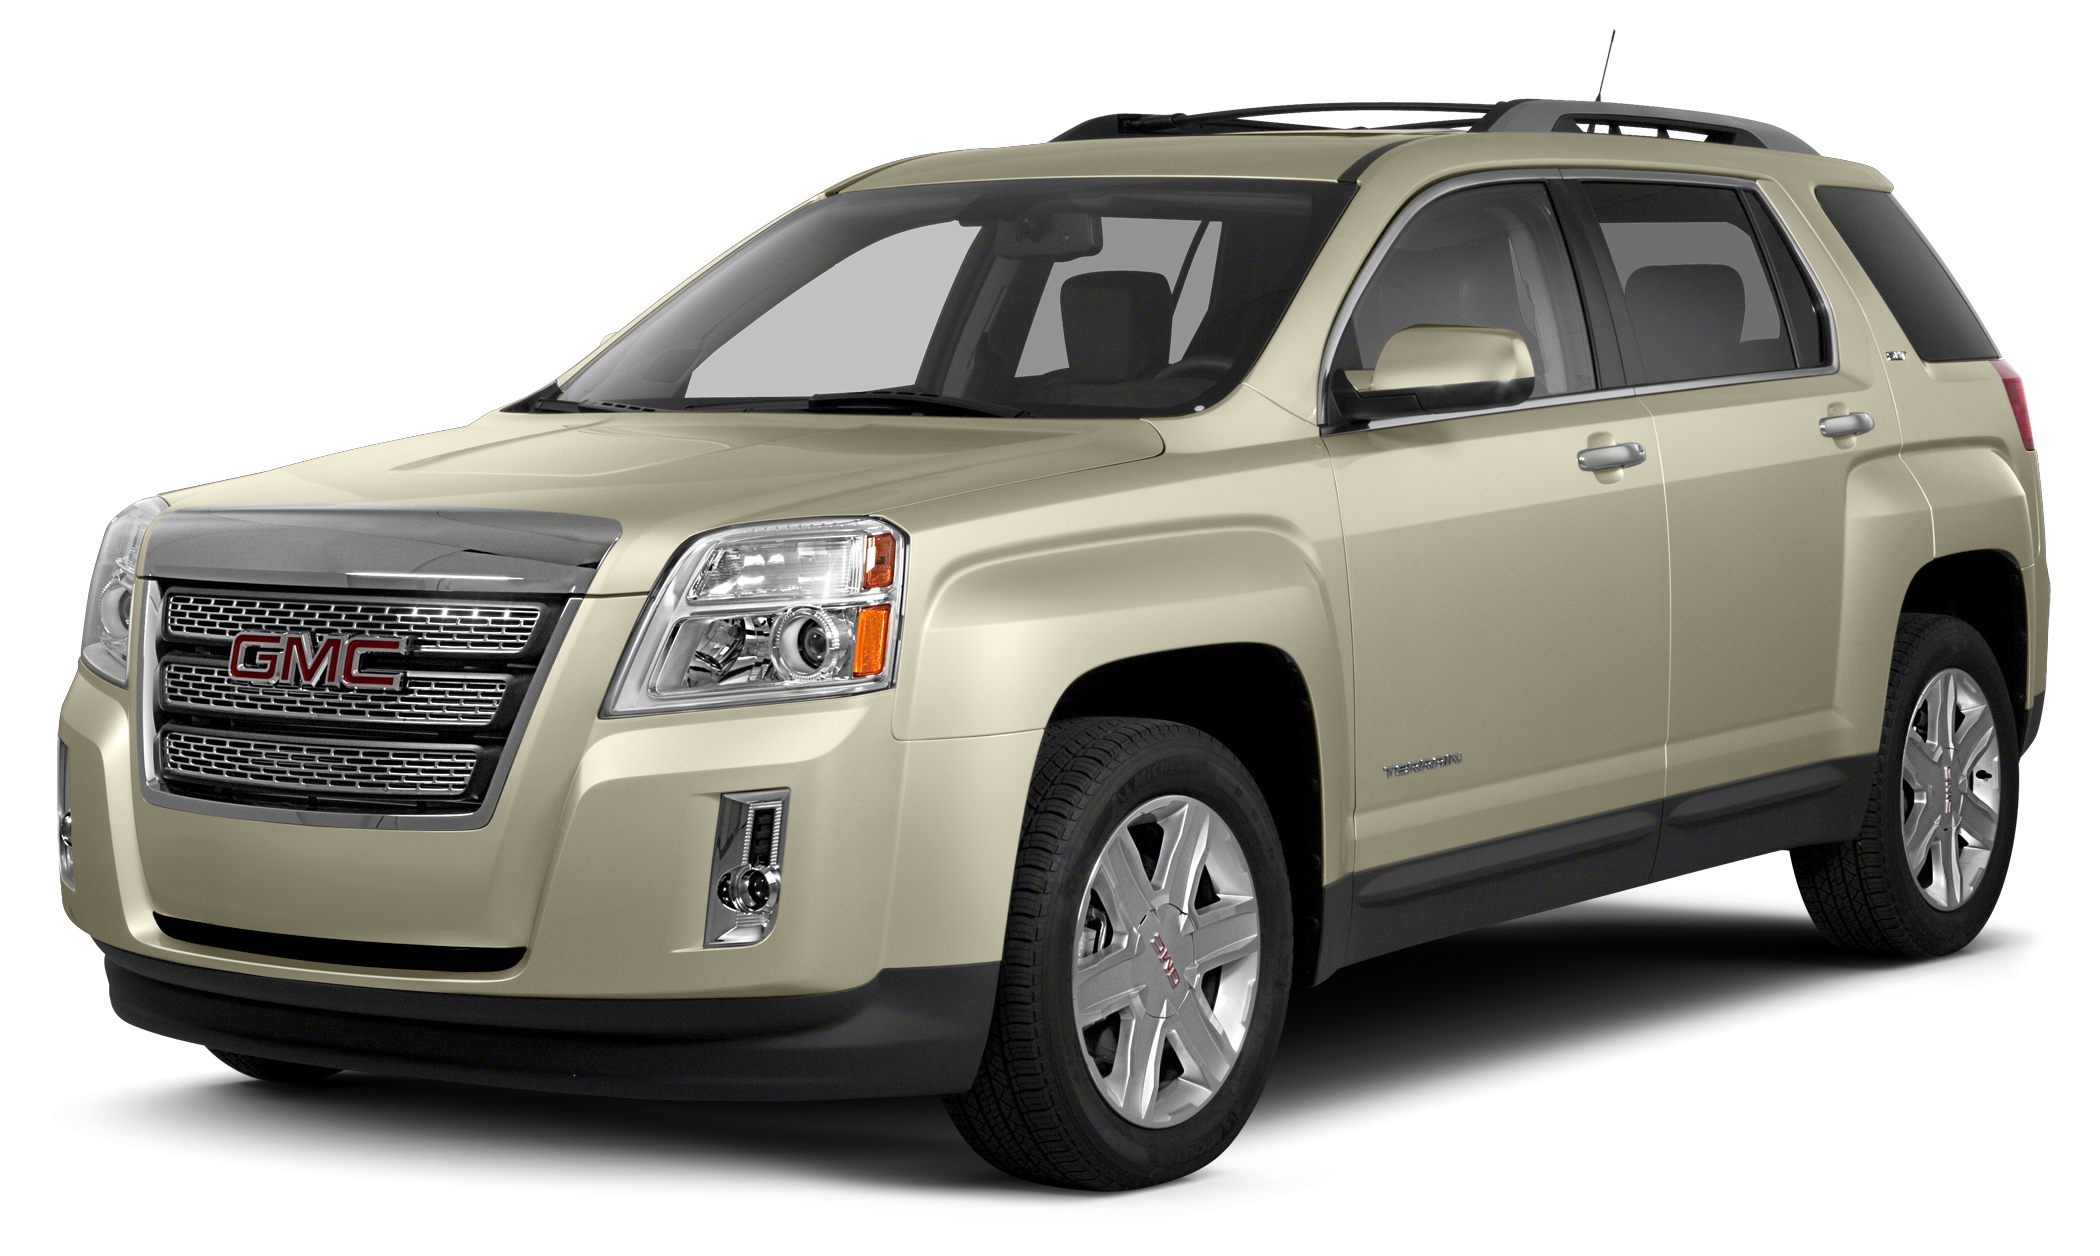 2013 GMC Terrain SLT-2 Miles 48654Color Tan Stock 196026A VIN 2GKFLXE32D6336747